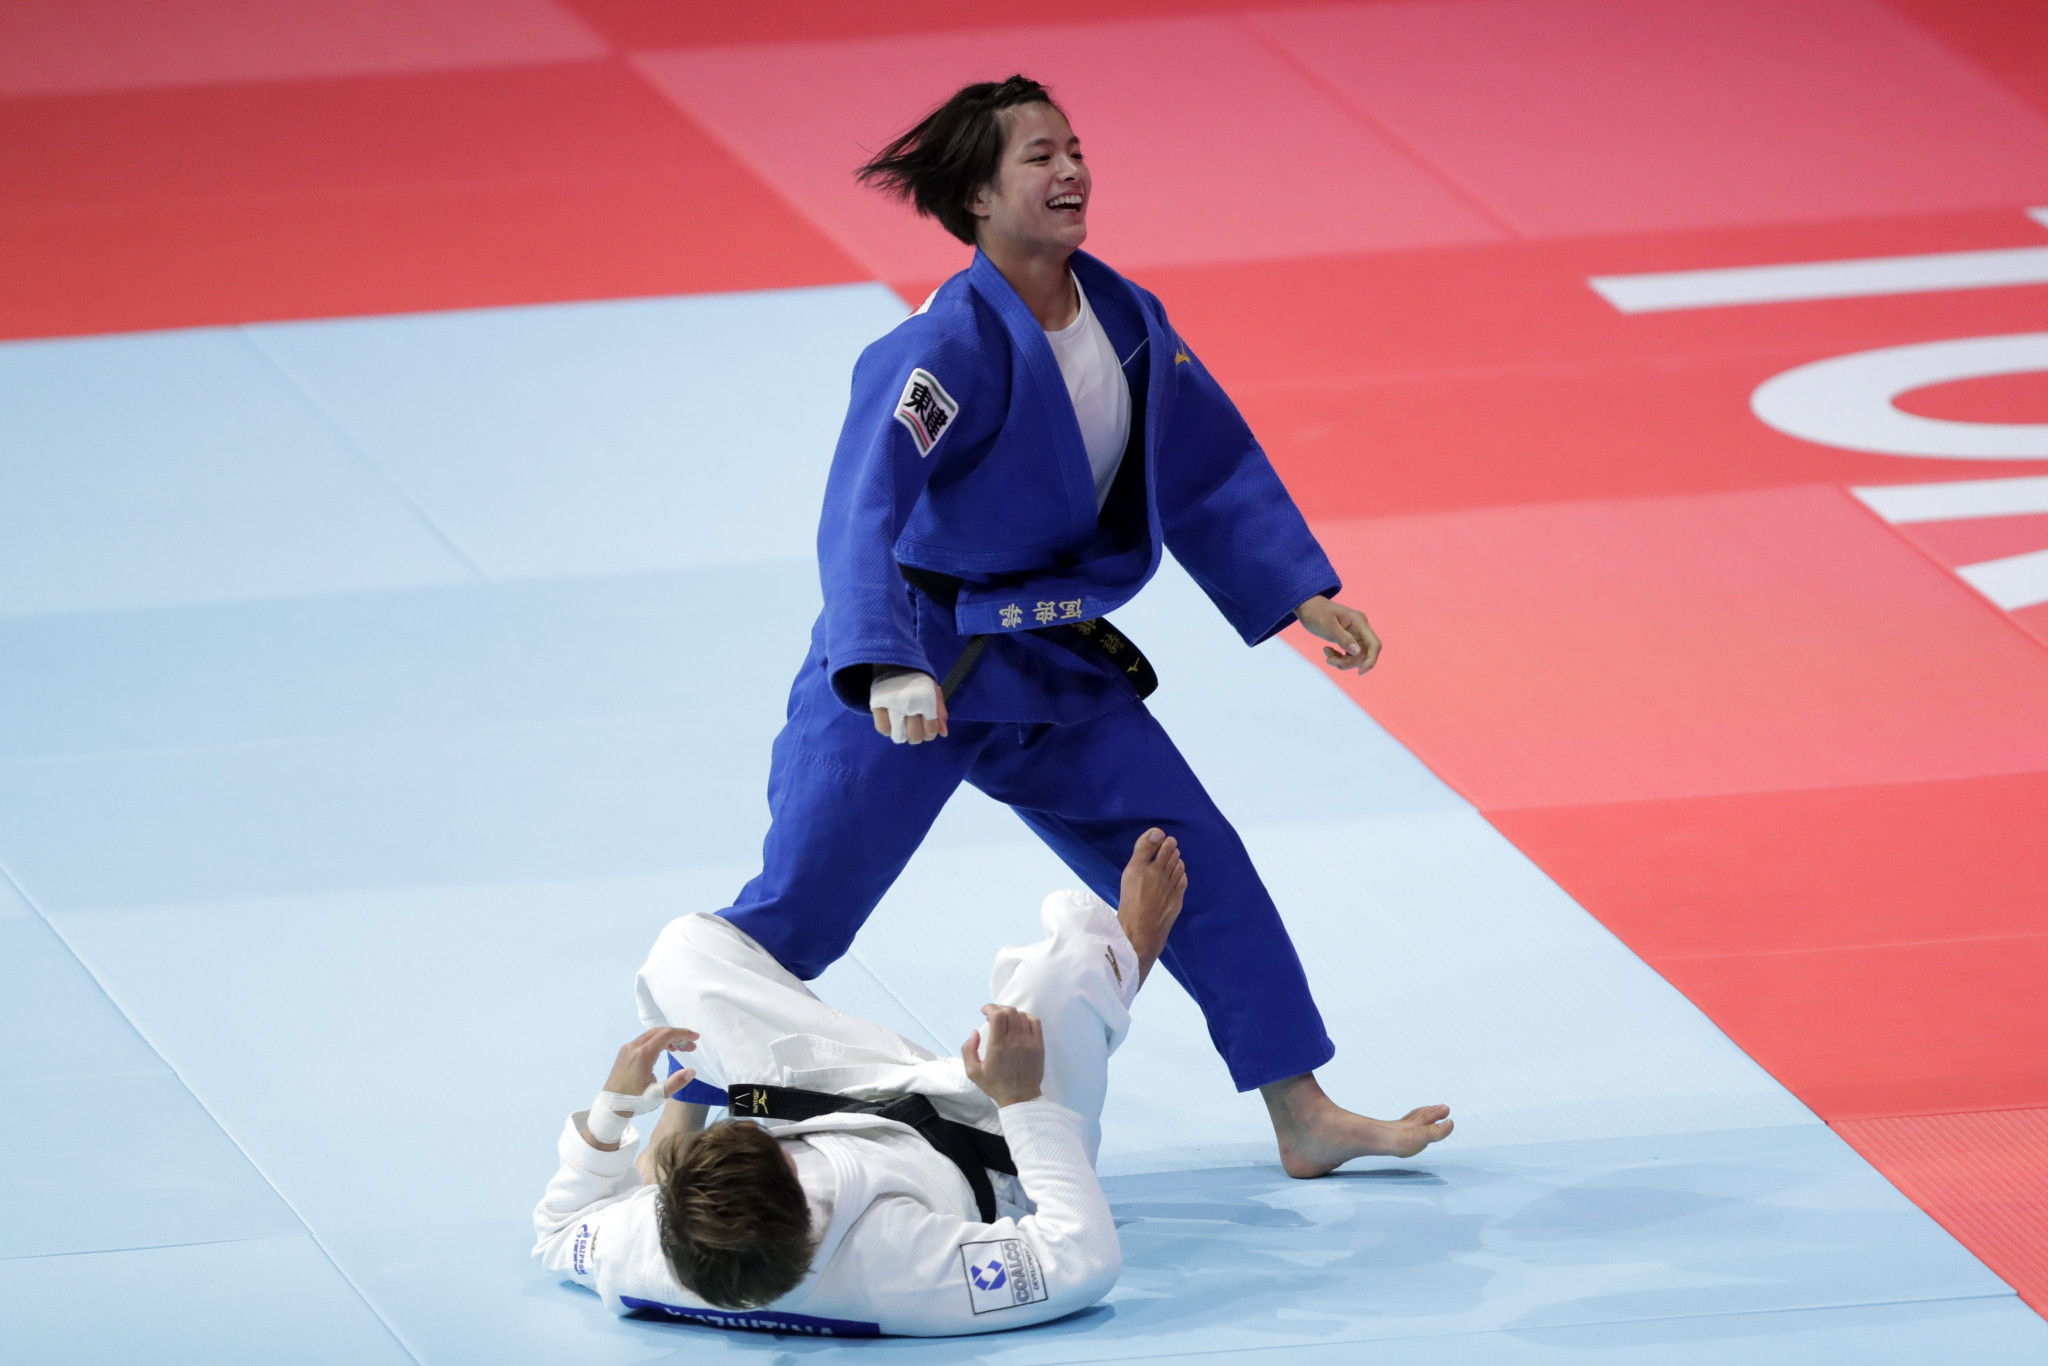 Mixed night for Abe family as Uta wins gold but Hifumi falls